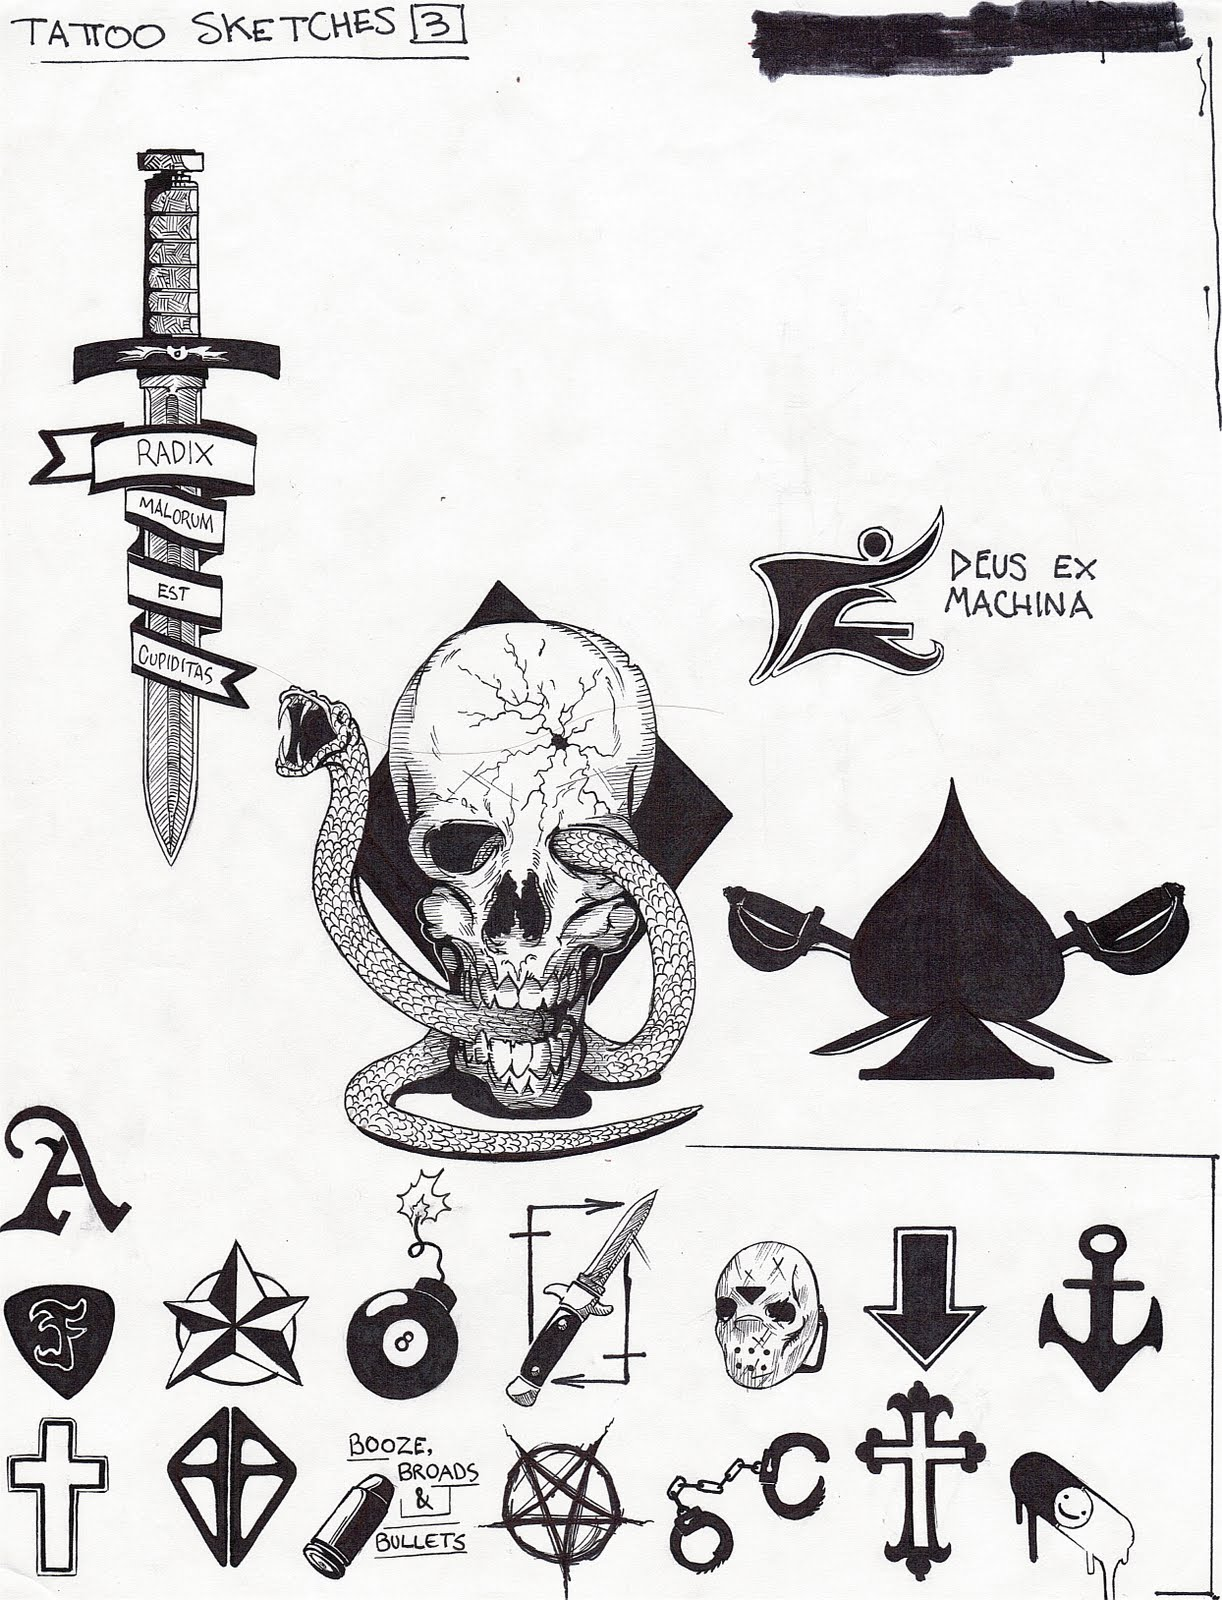 4d9721f44 Tattoo Sketches 3 | The Sketchblog Graveyard-